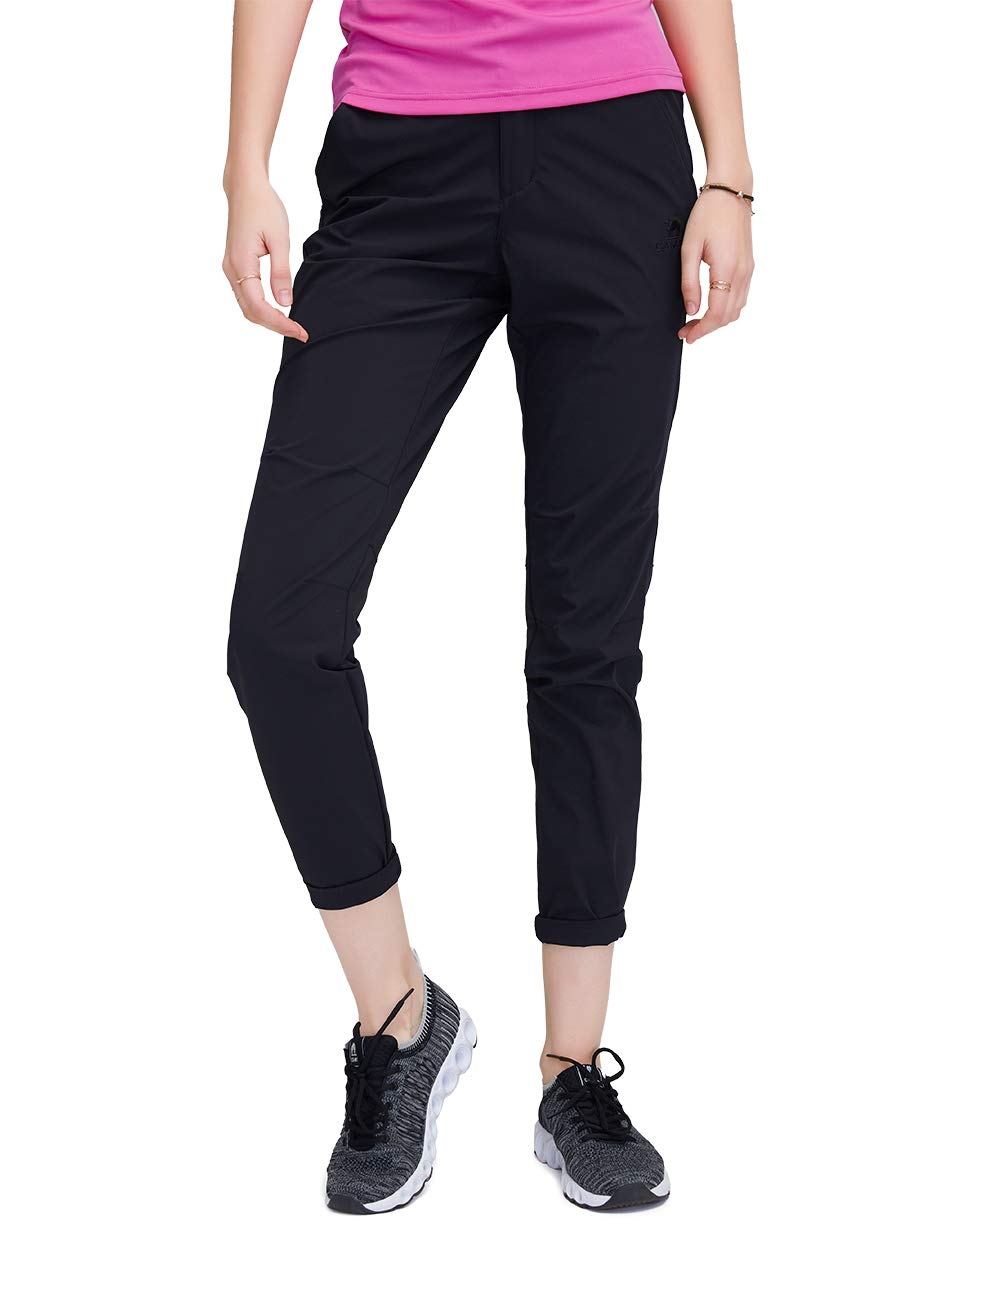 6ace333d2c9 Amazon.com   Camel Mens Womens Hiking Pants Lightweight Quick Dry Casual  Long Trousers   Sports   Outdoors